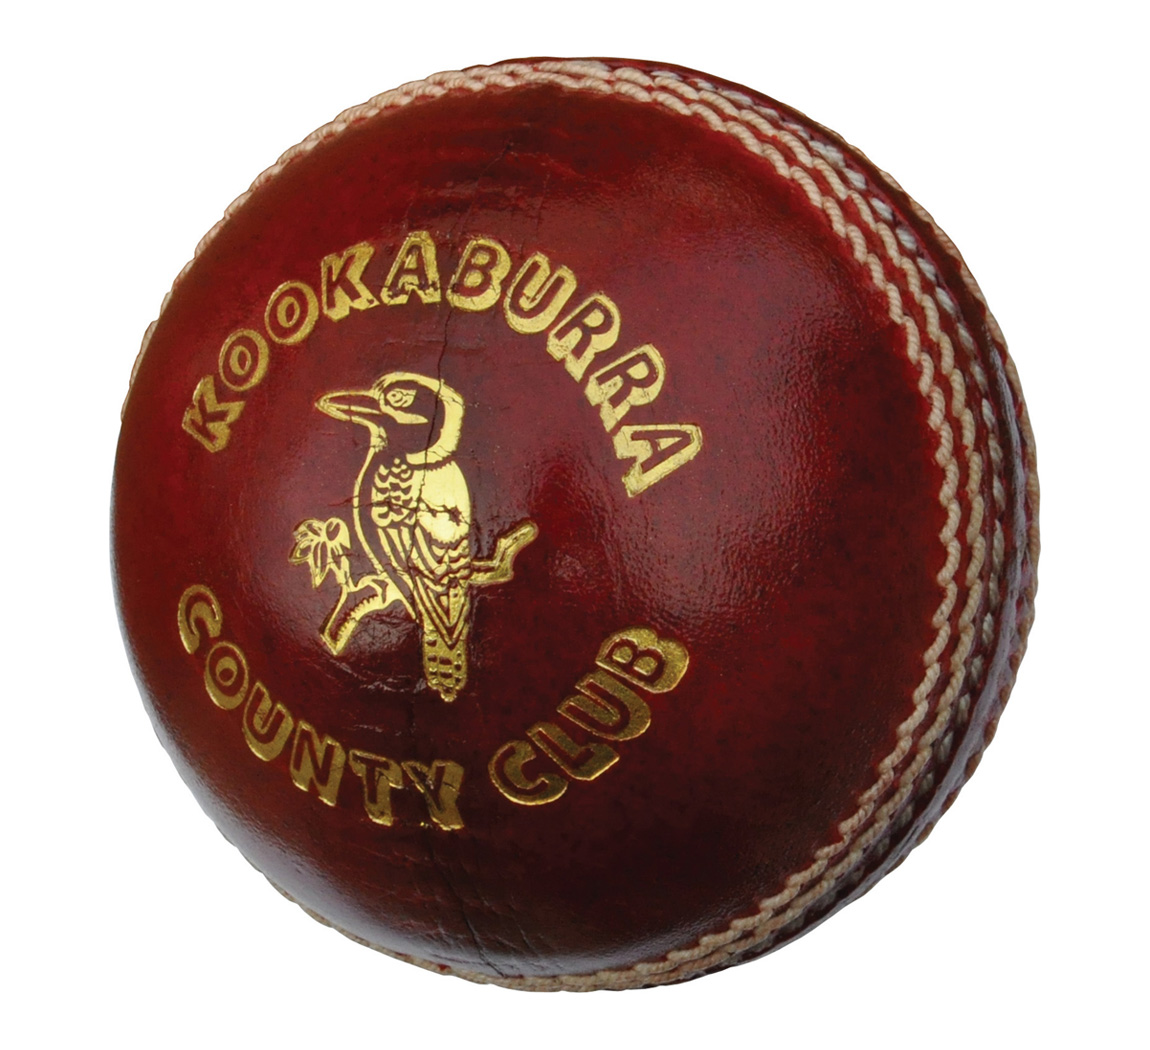 Picture Cricket Ball Download image #28901